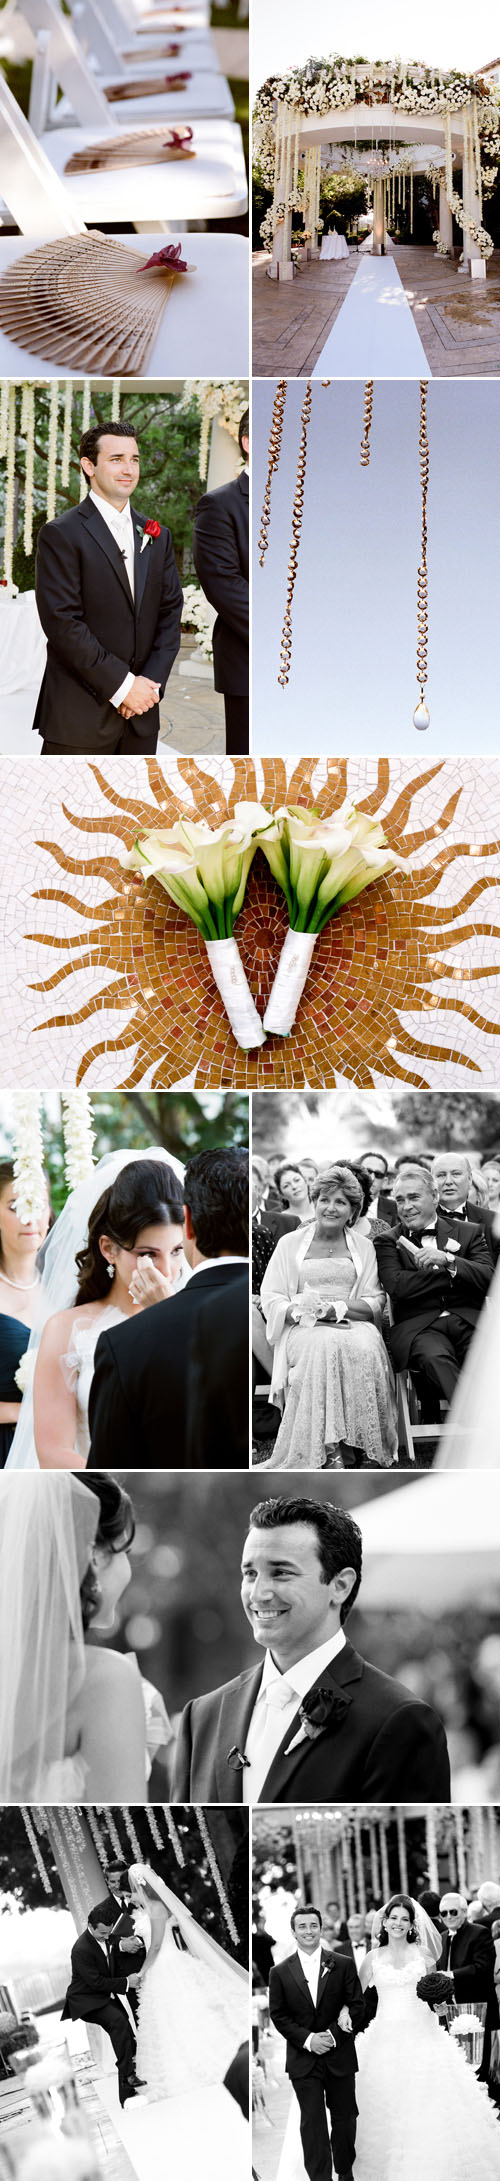 classic southern california real wedding ceremony at St. Regis Monarch Beach, coordinated by Mindy Weiss, photos by Yvette Roman Photography